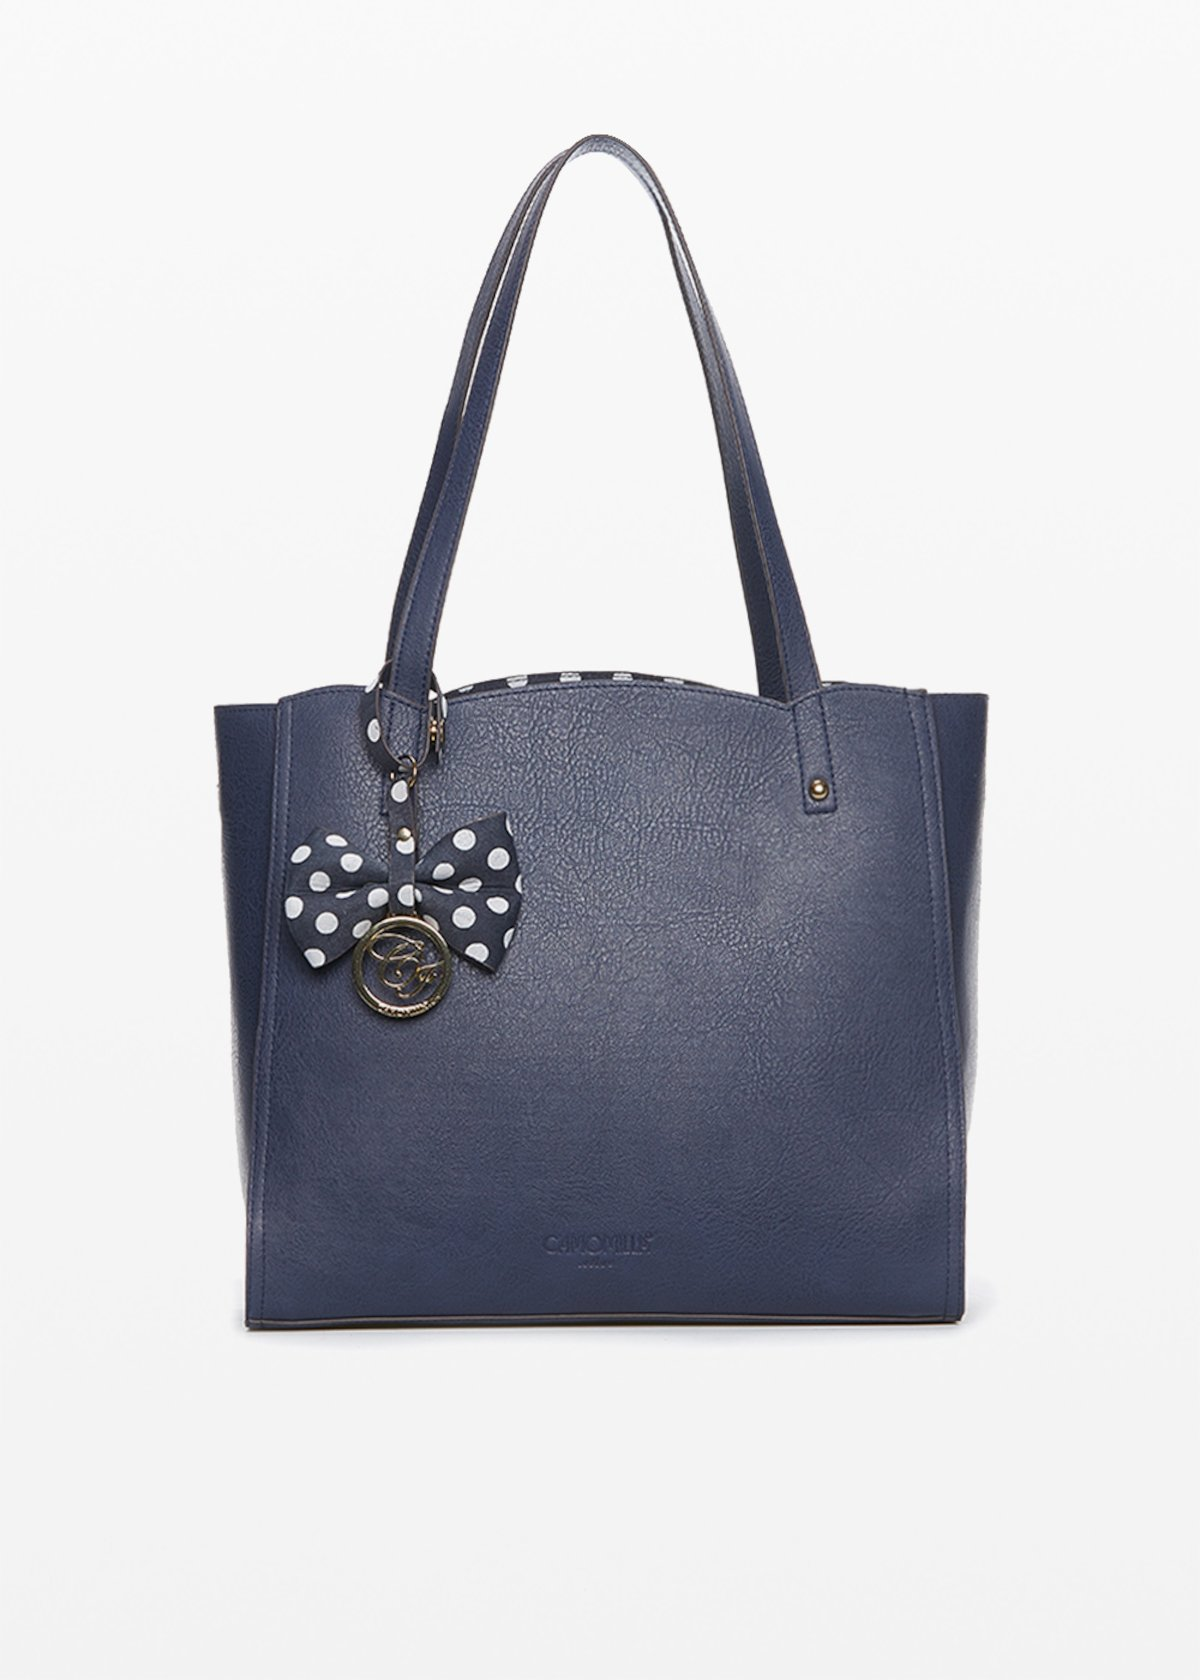 Bryn faux leather shopping bag with bow and contrasting logo - Medium Blue - Woman